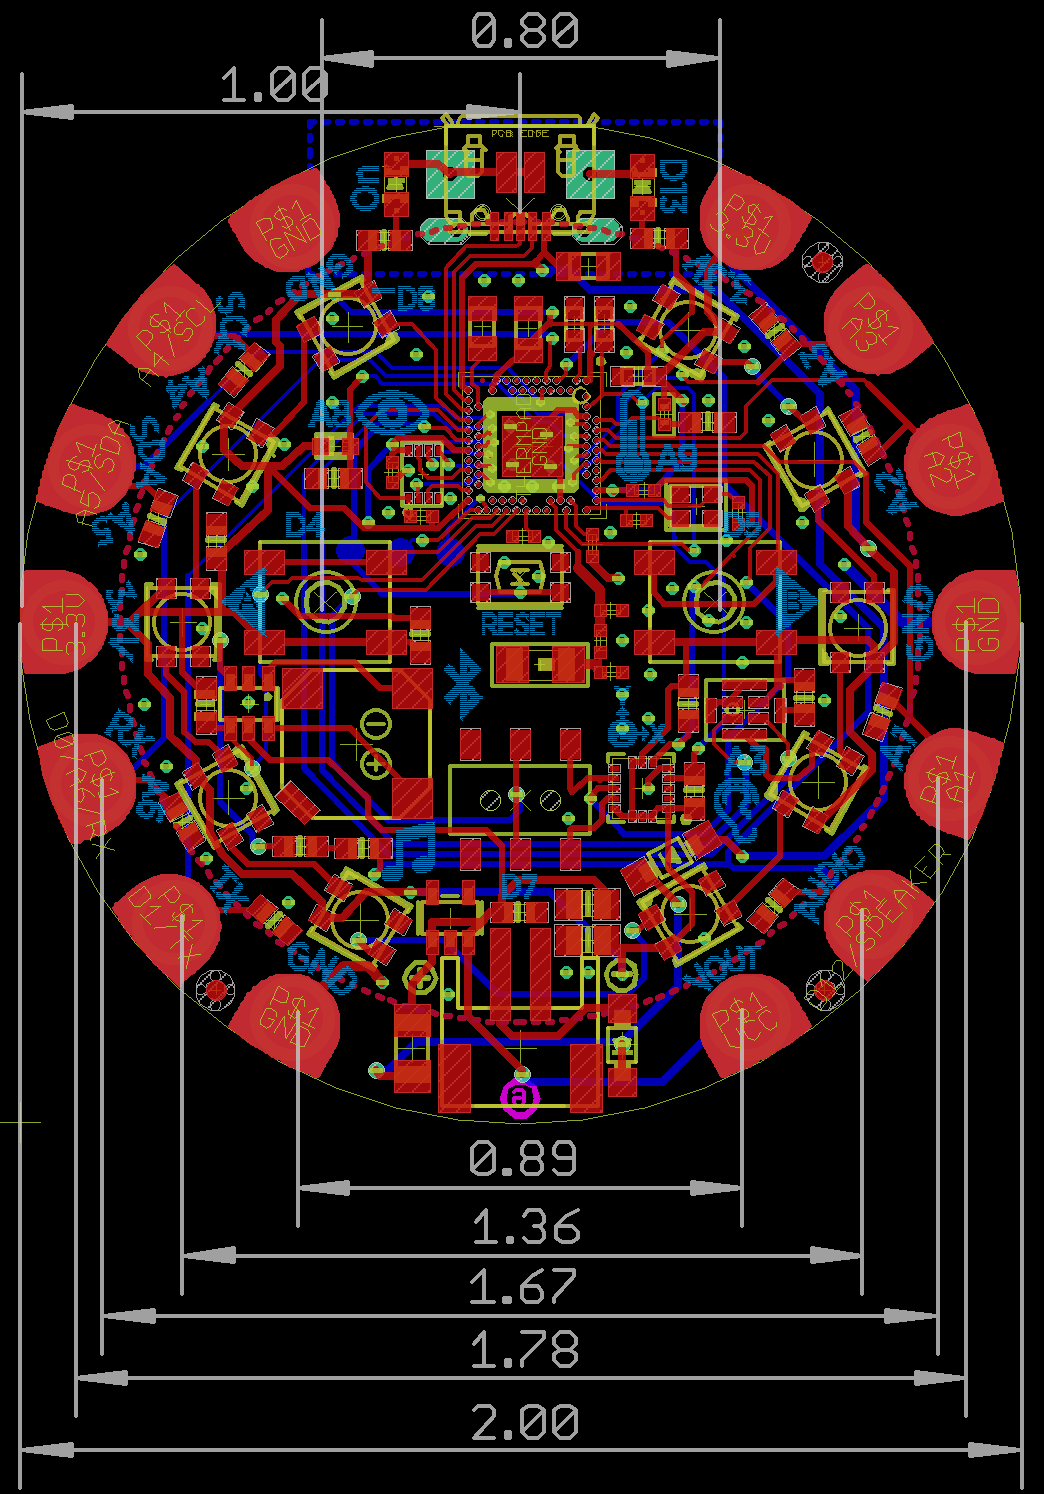 adafruit_products_Circuit_Playground_Bluefruit_Fab_Print.png